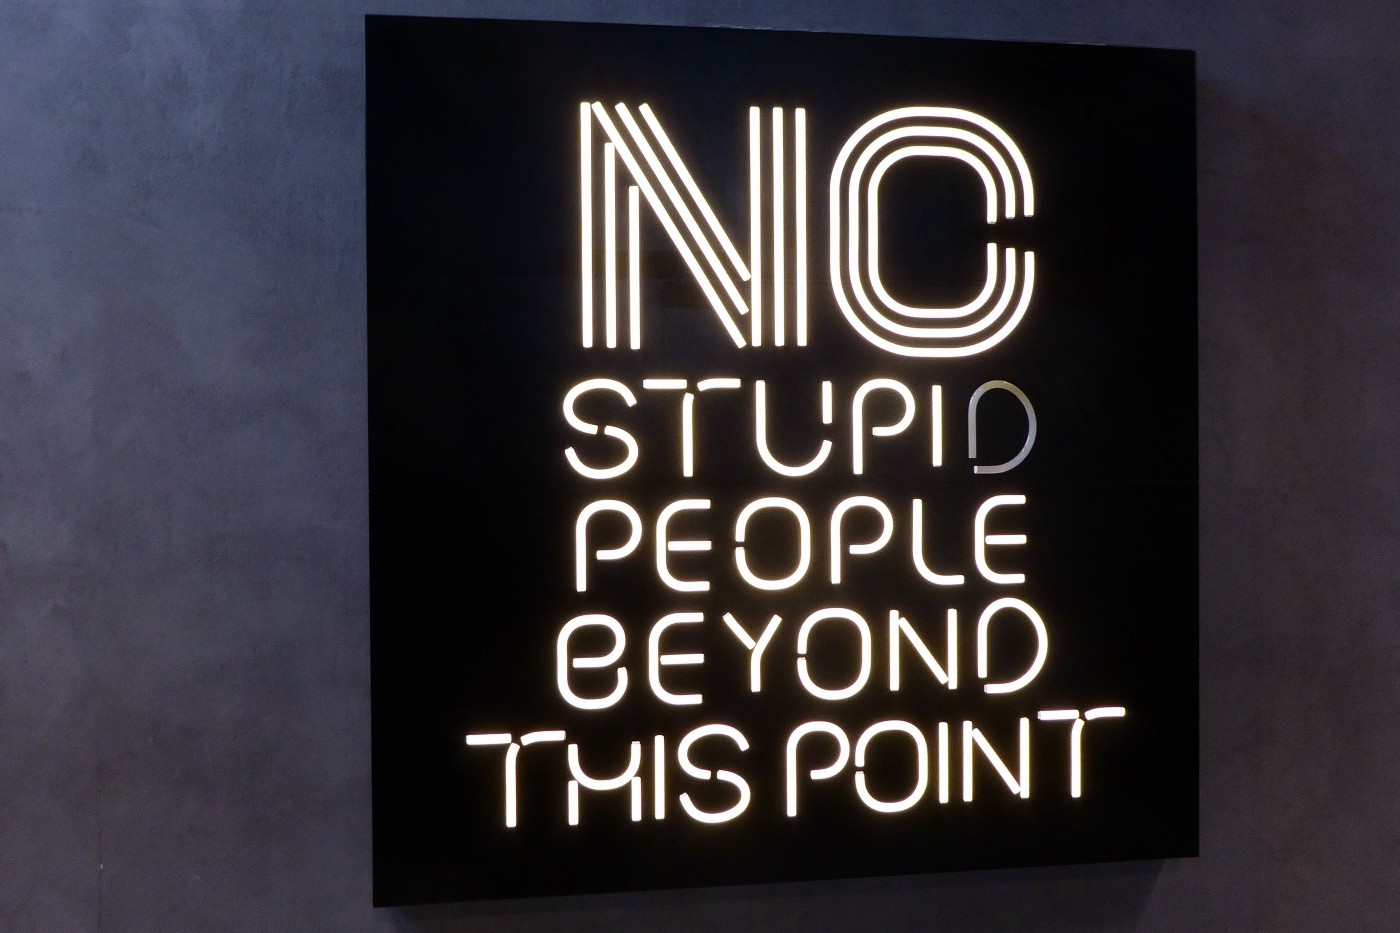 A neon sign about stupidity